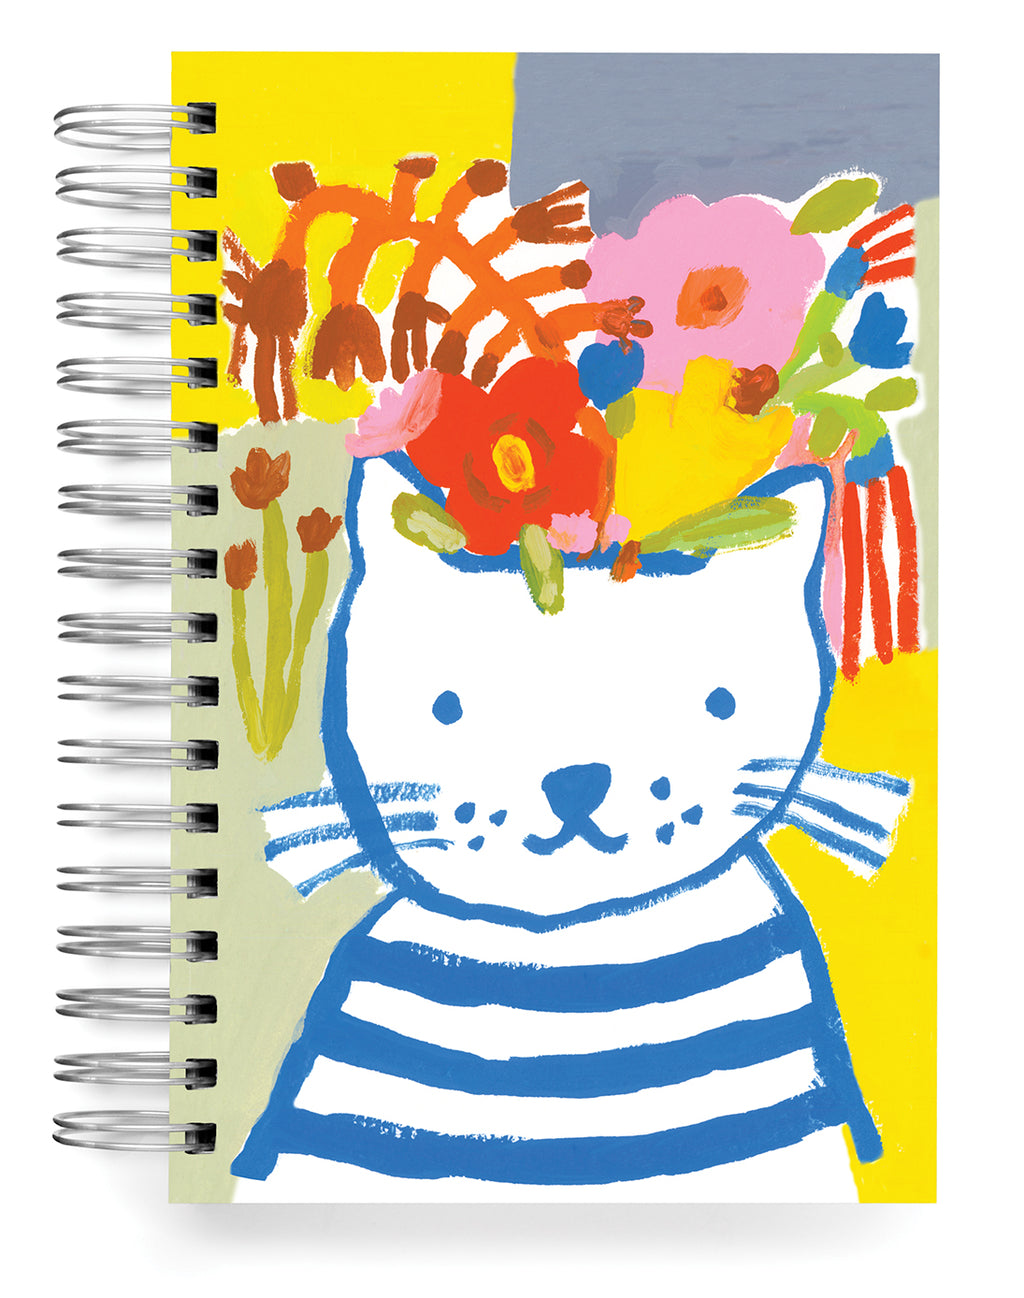 Blue cat Jumbo Journal